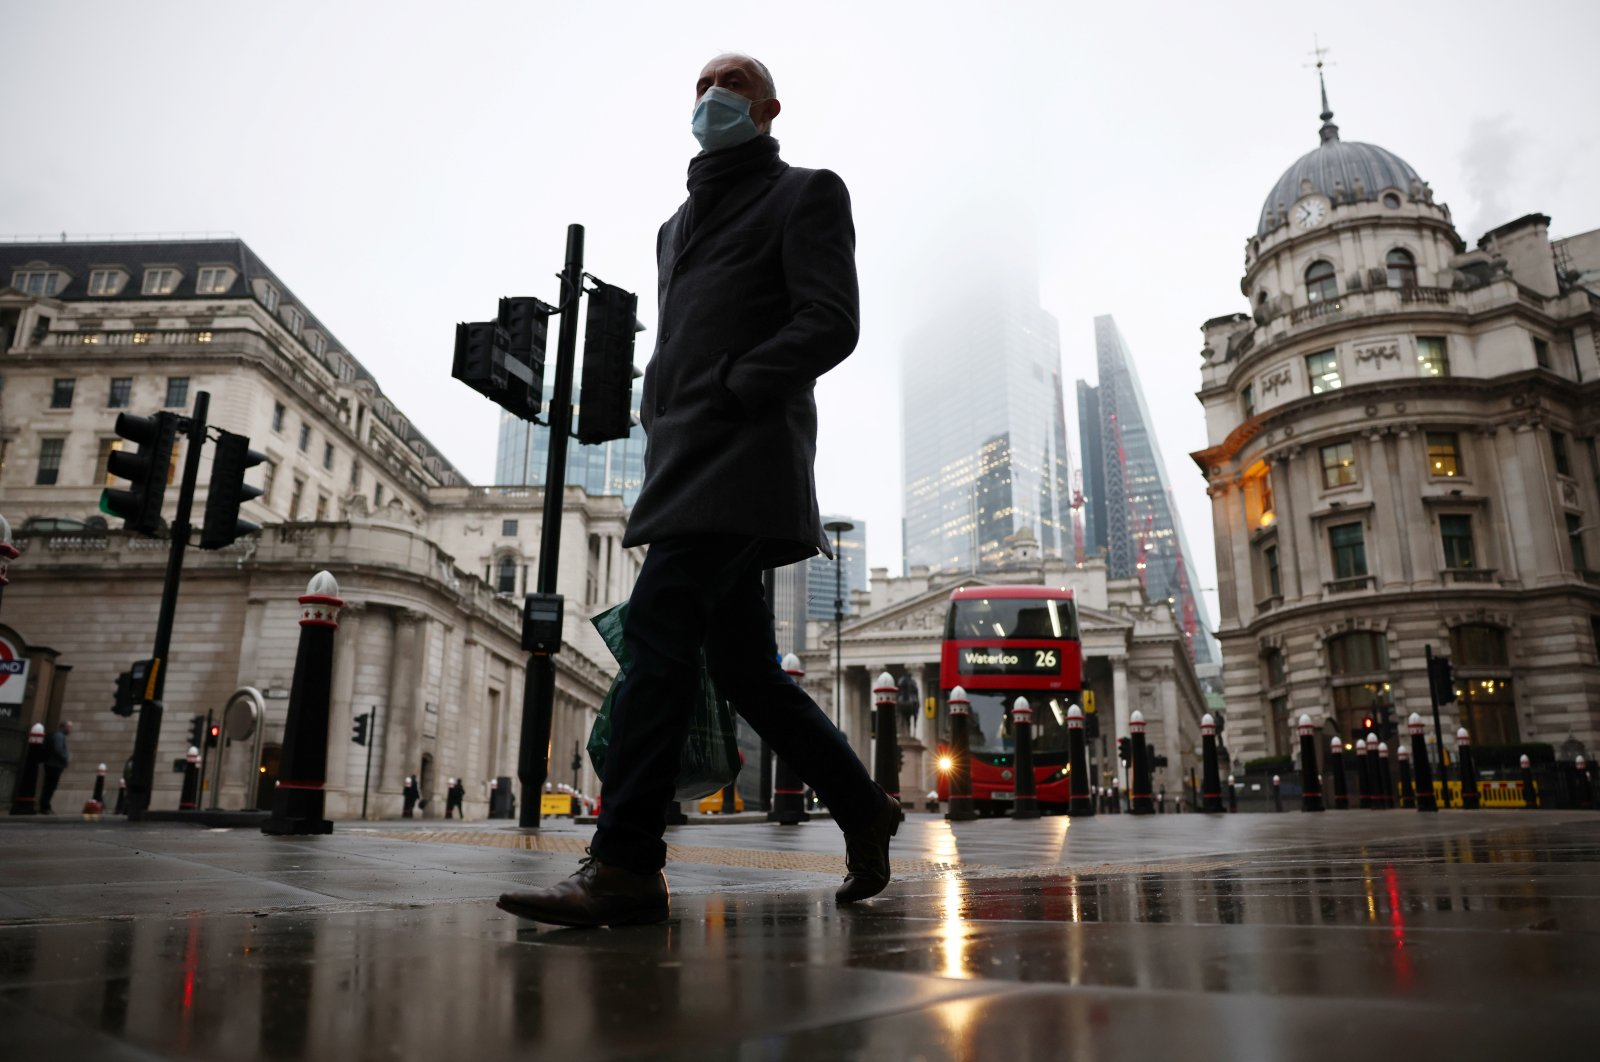 A man walks through the City of London financial district amid the COVID-19 outbreak, in London, Britain, March 4, 2021. (Reuters Photo)